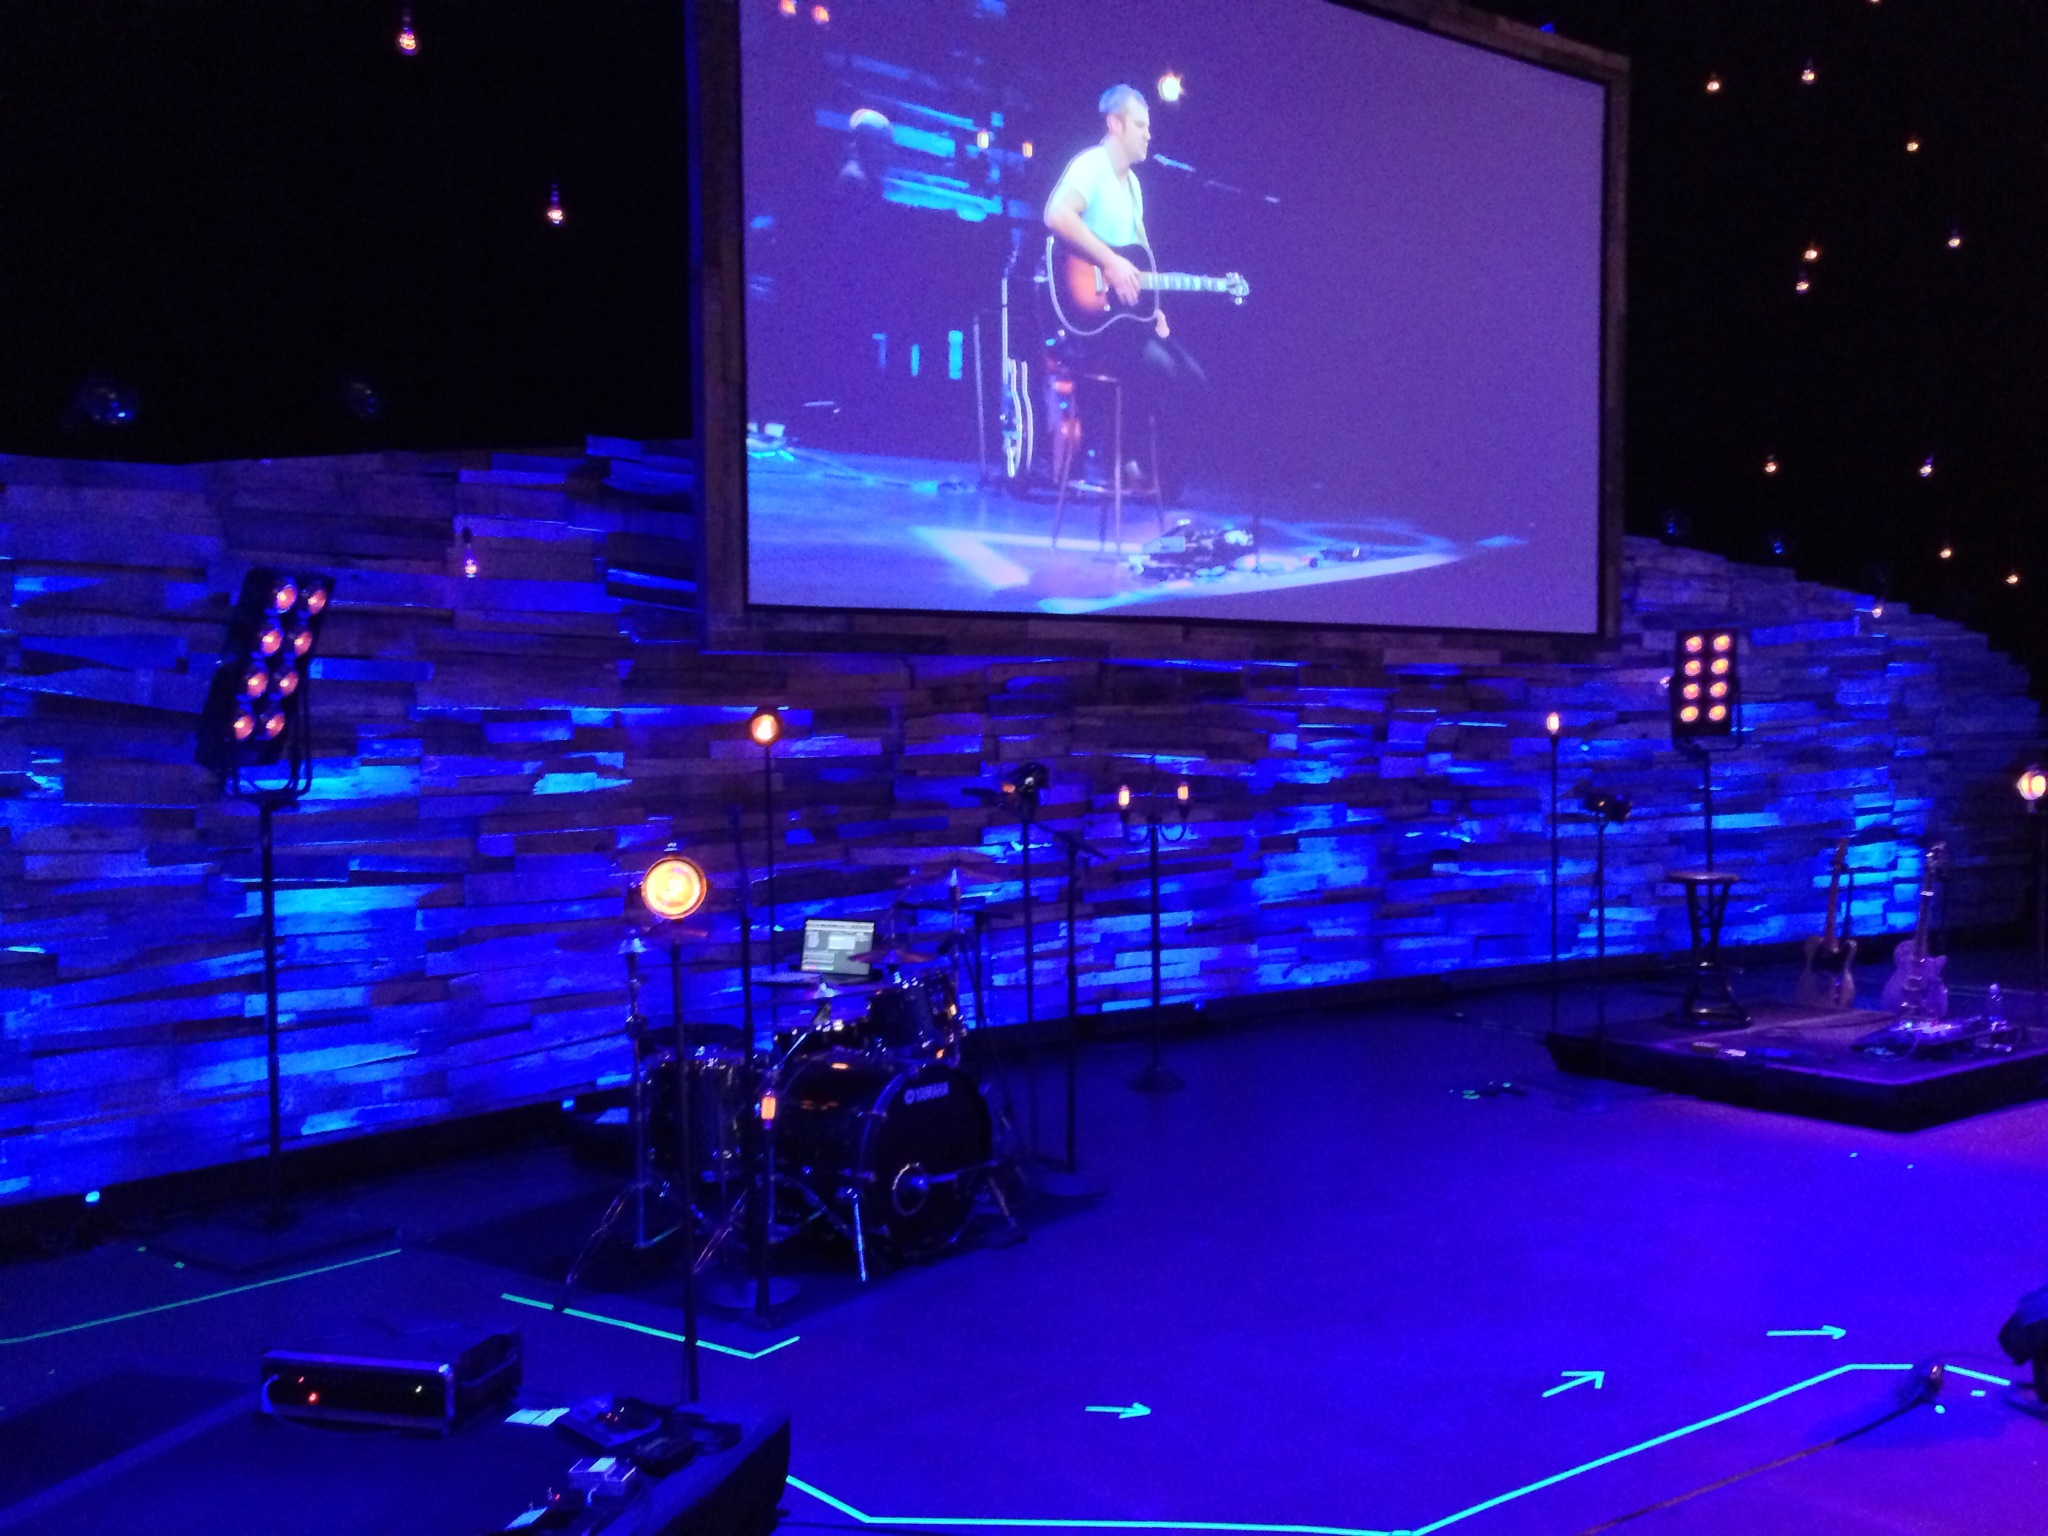 church stage design - Stage Design Ideas